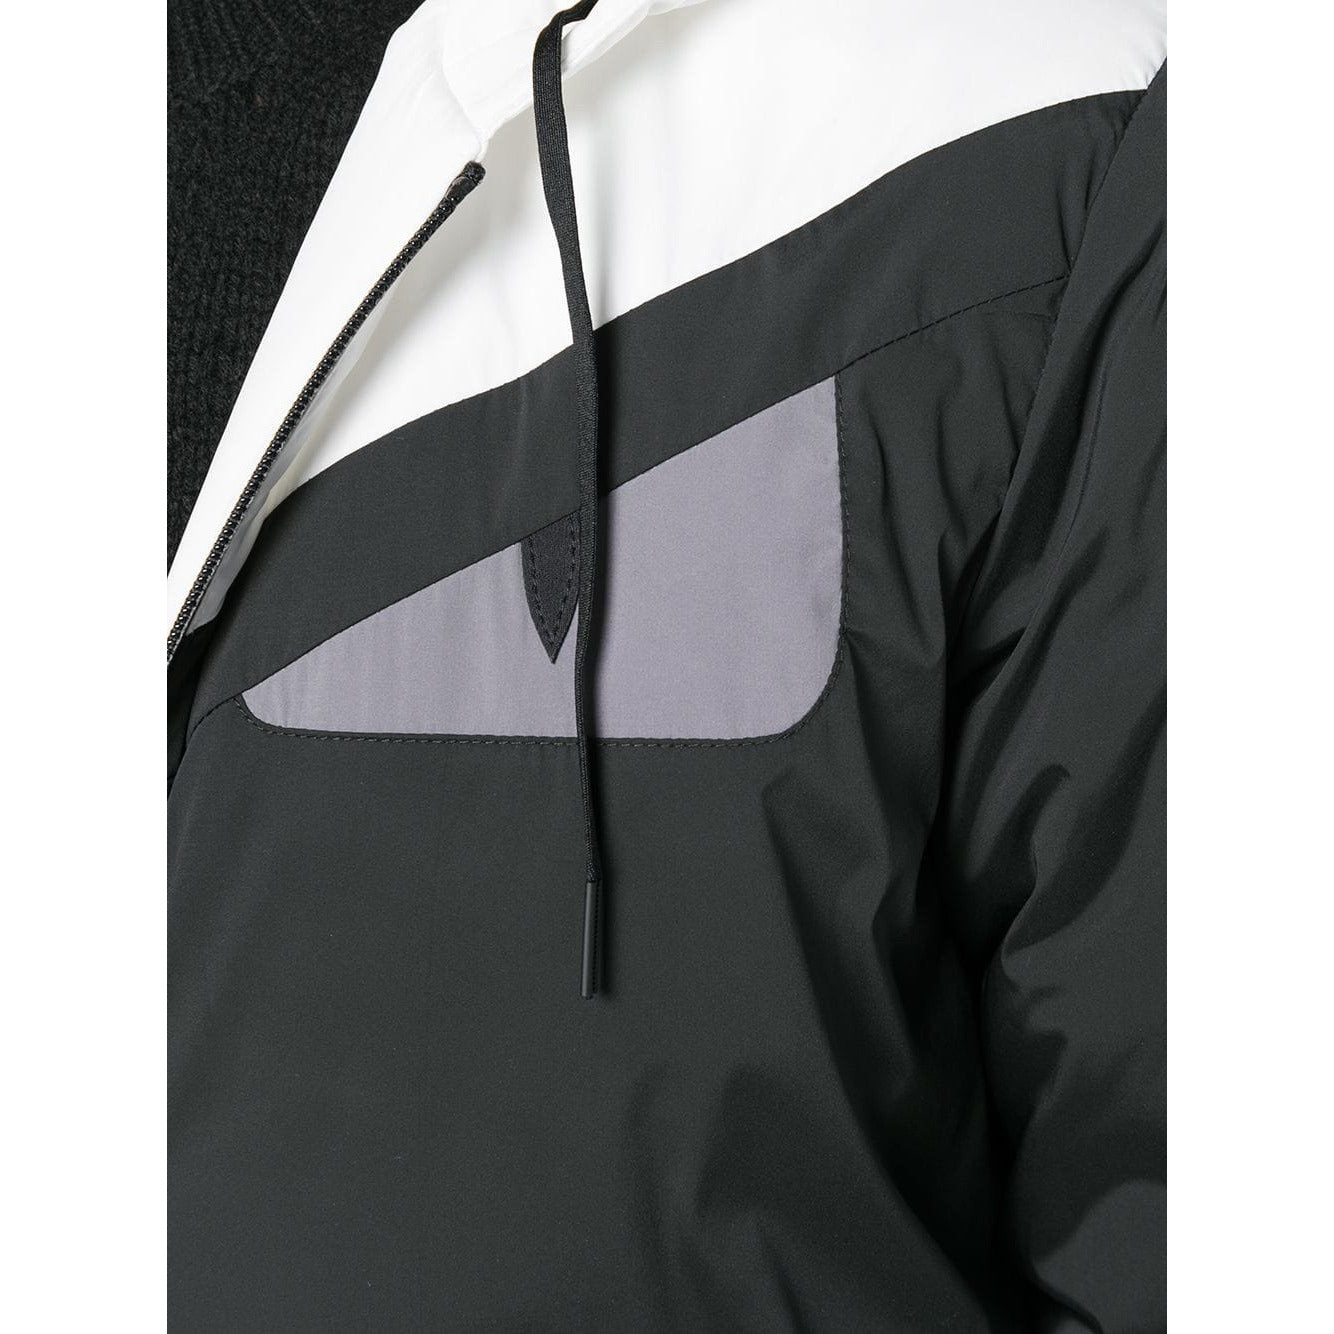 Fendi Reversible Bug Eyes Jacket (Black/White)